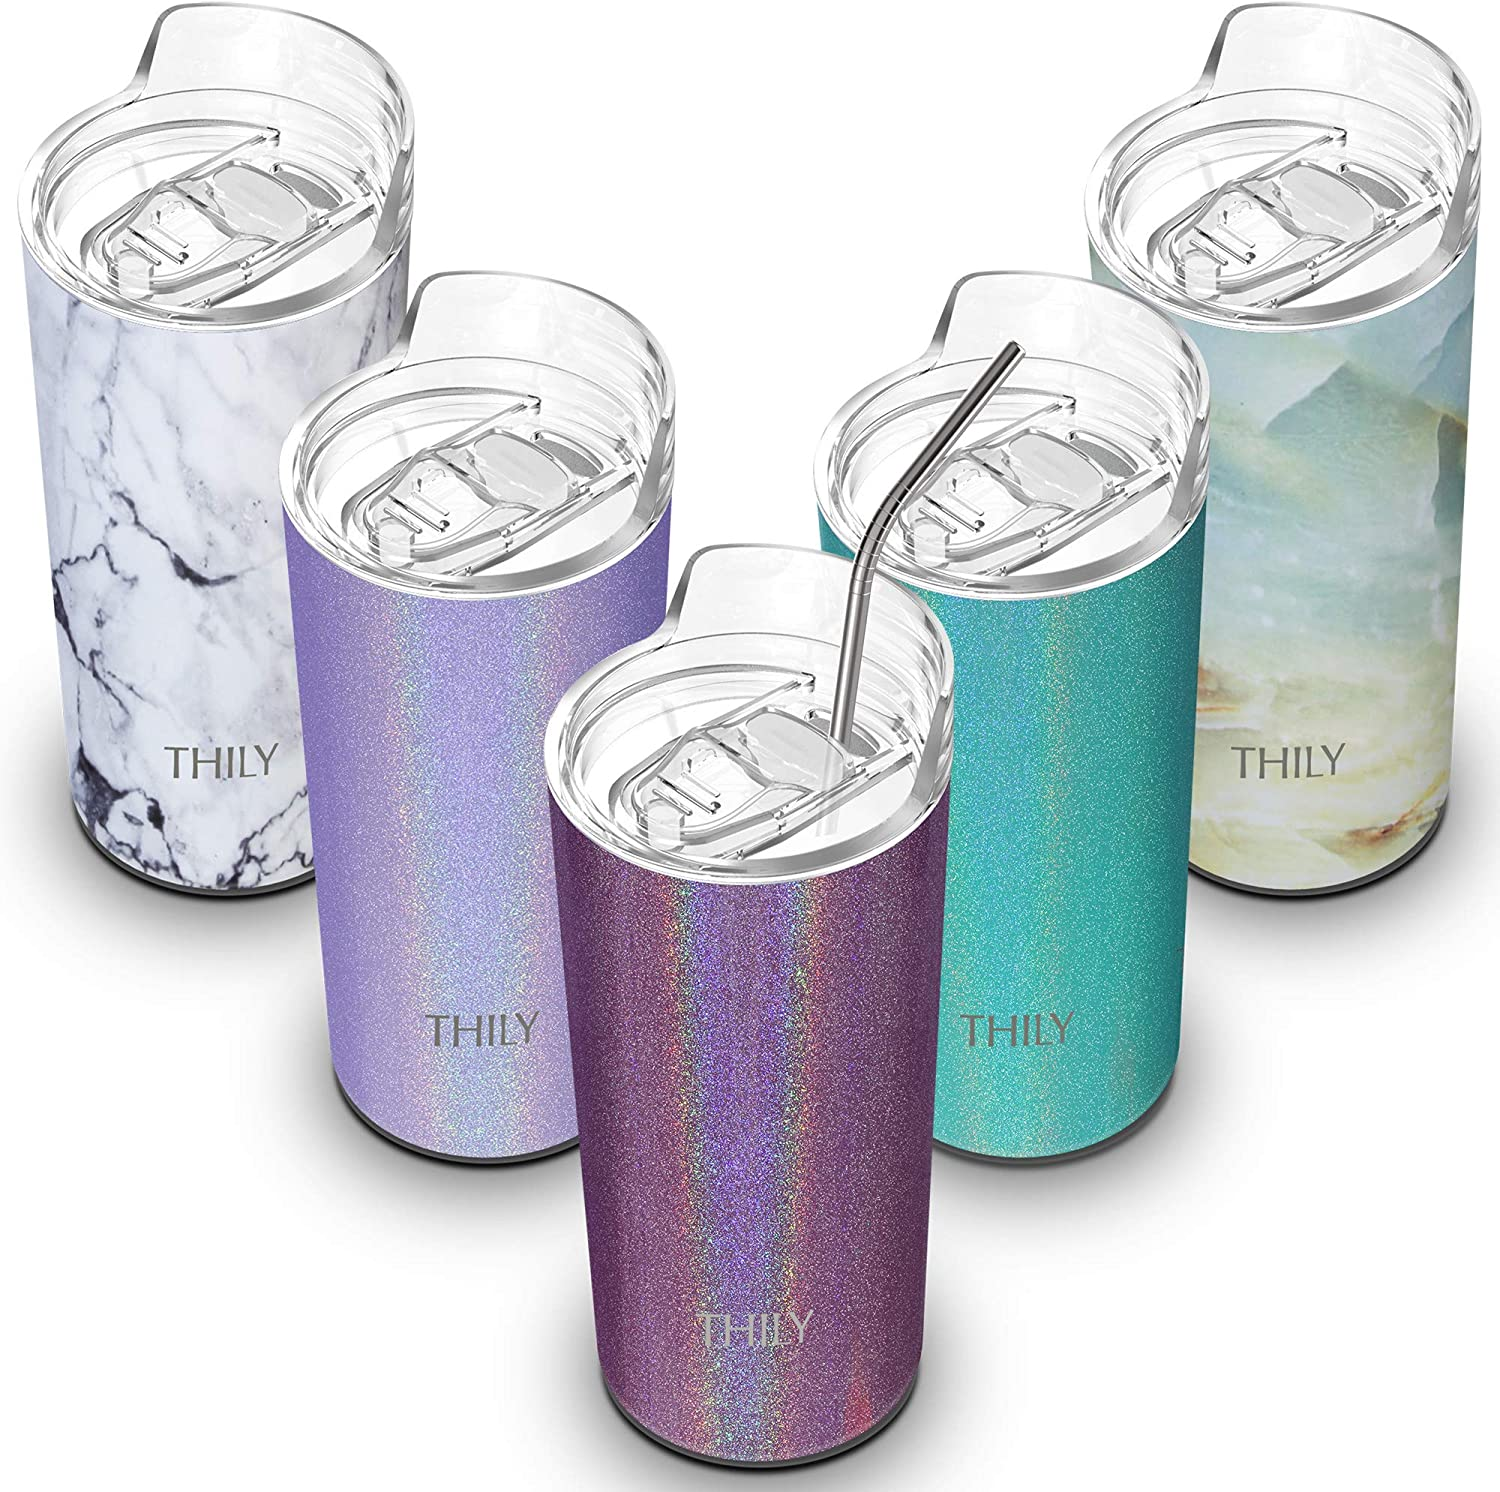 Insulated Skinny Cup Stainless Steel - THILY Travel Tumbler with Lid and Straw, Reusable, Portable, Durable, 14 oz, Fit Cup Holder, Keep Cold or Hot for Ice Water, Coffee, Drinks, Glitter Red-Brown